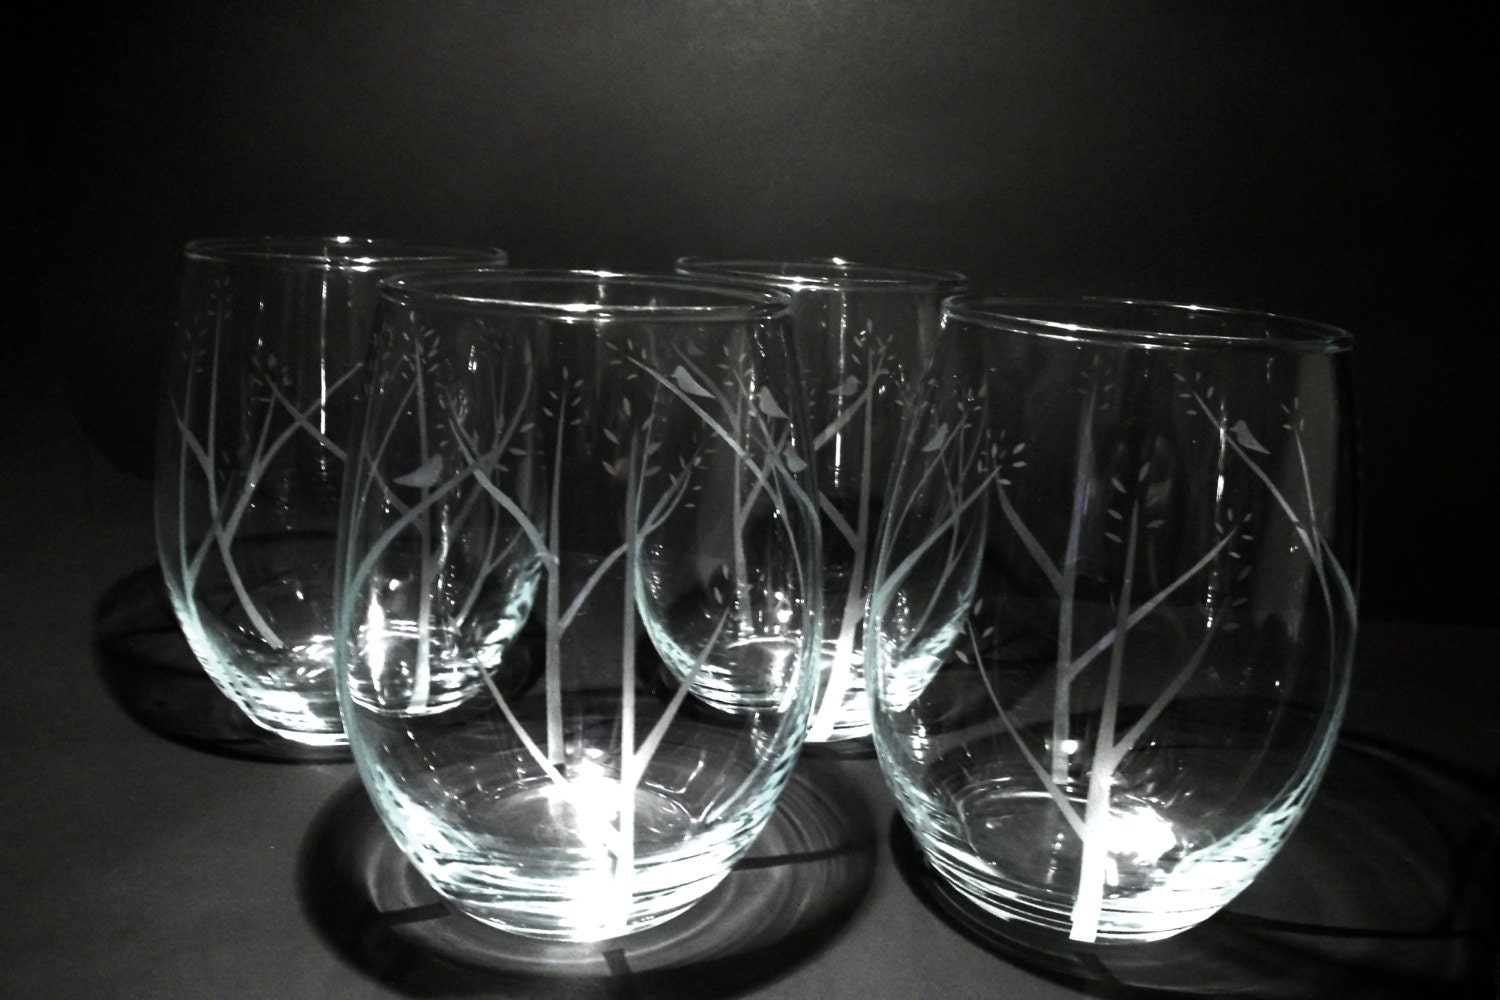 Etched stemless wine glasses wedding gift birds in trees for Etched glass wedding gifts